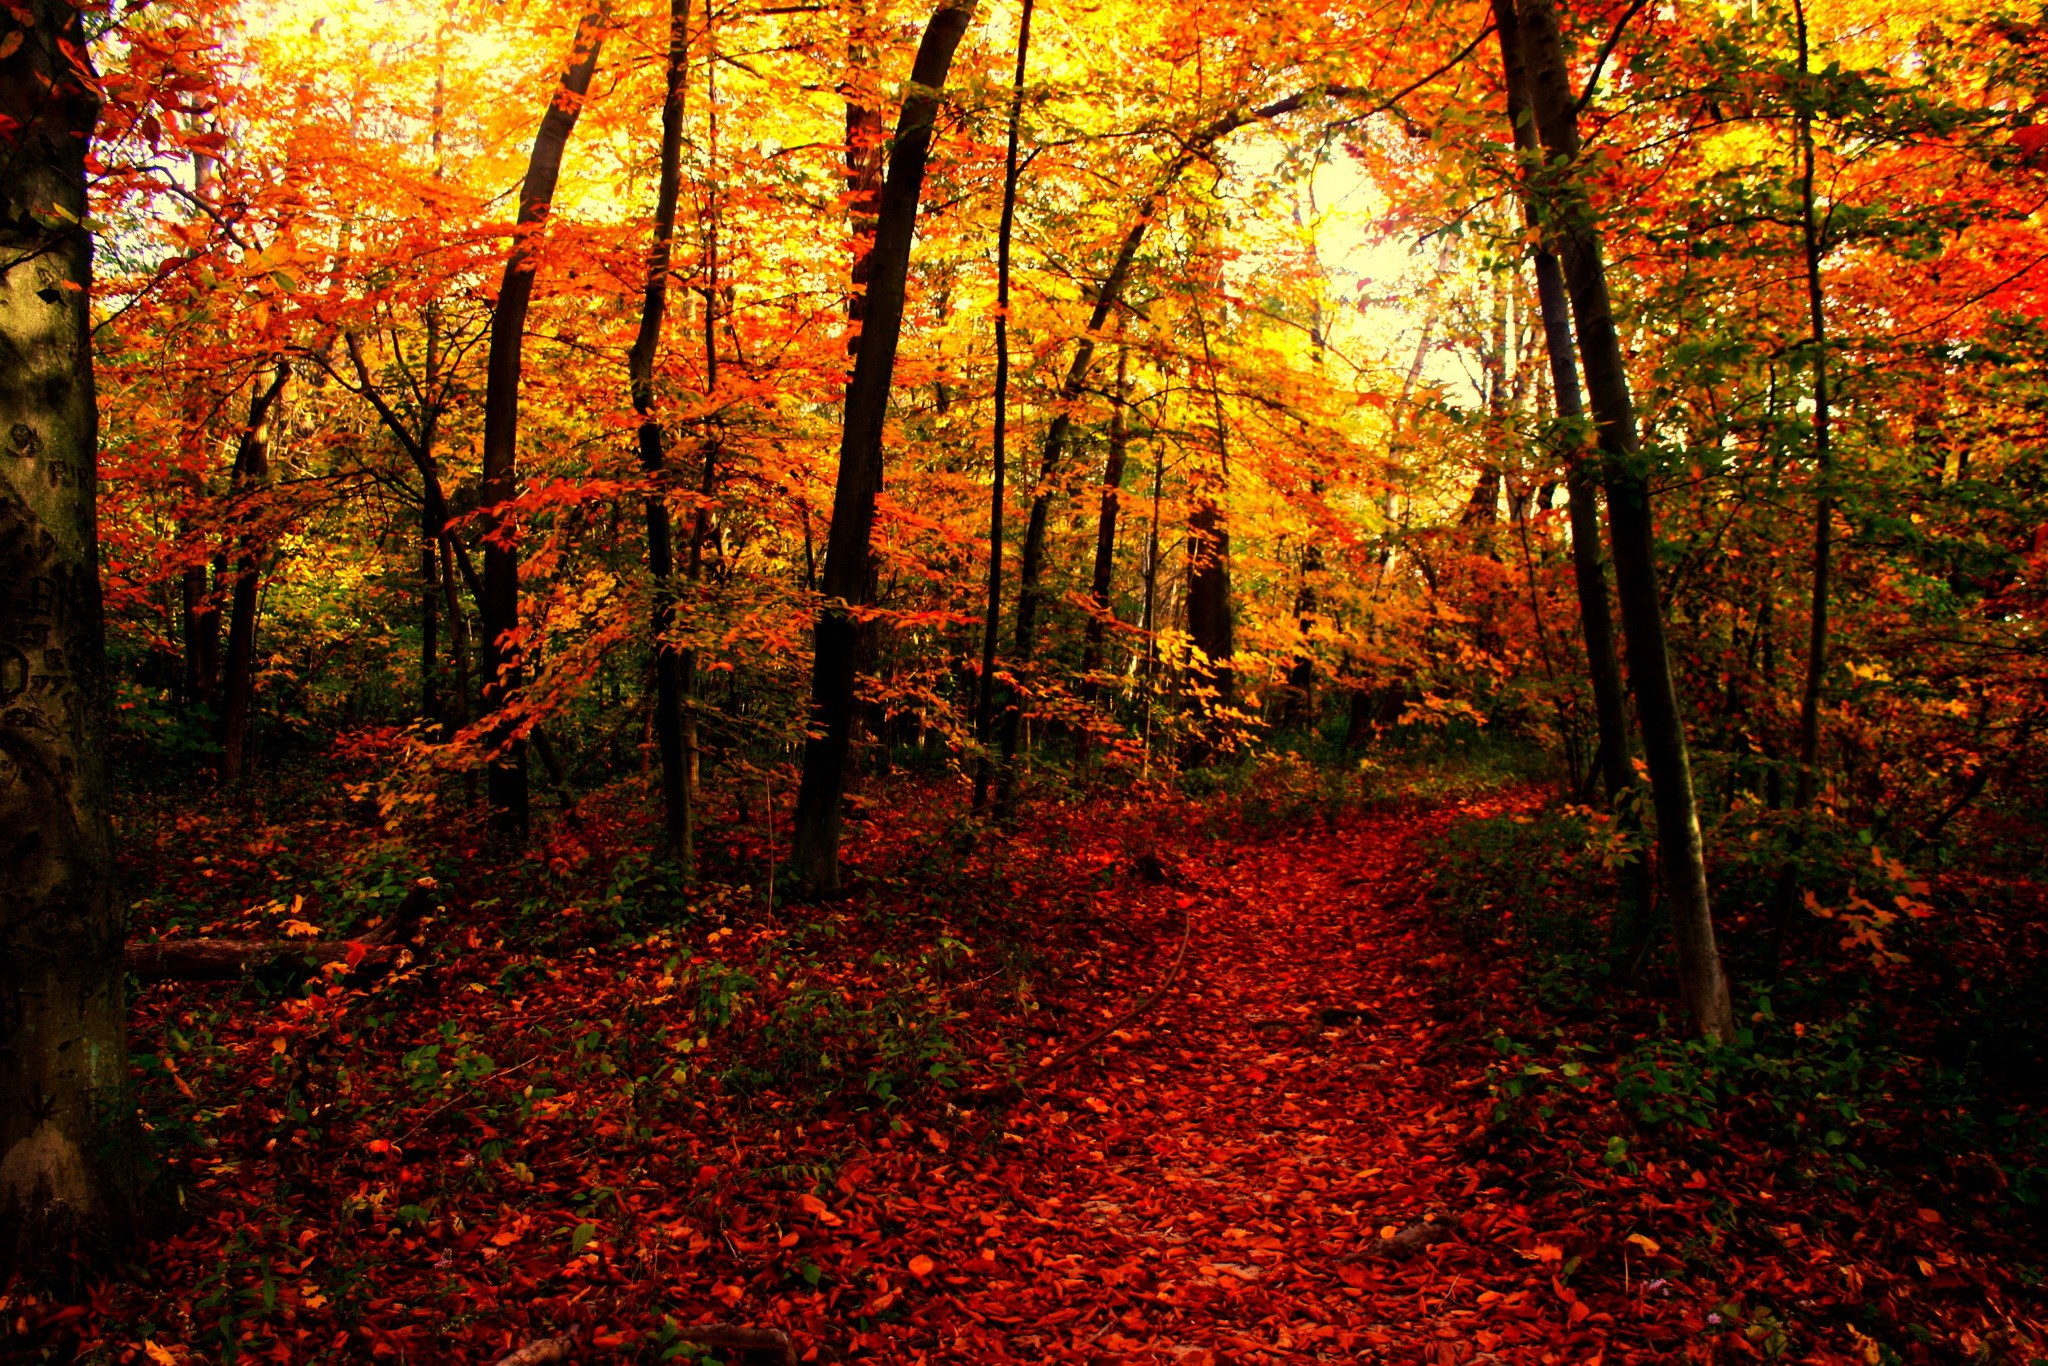 Fall Leaves Wallpaper Macbook Seasons Autumn Forests Trail Nature 2048 X 1366